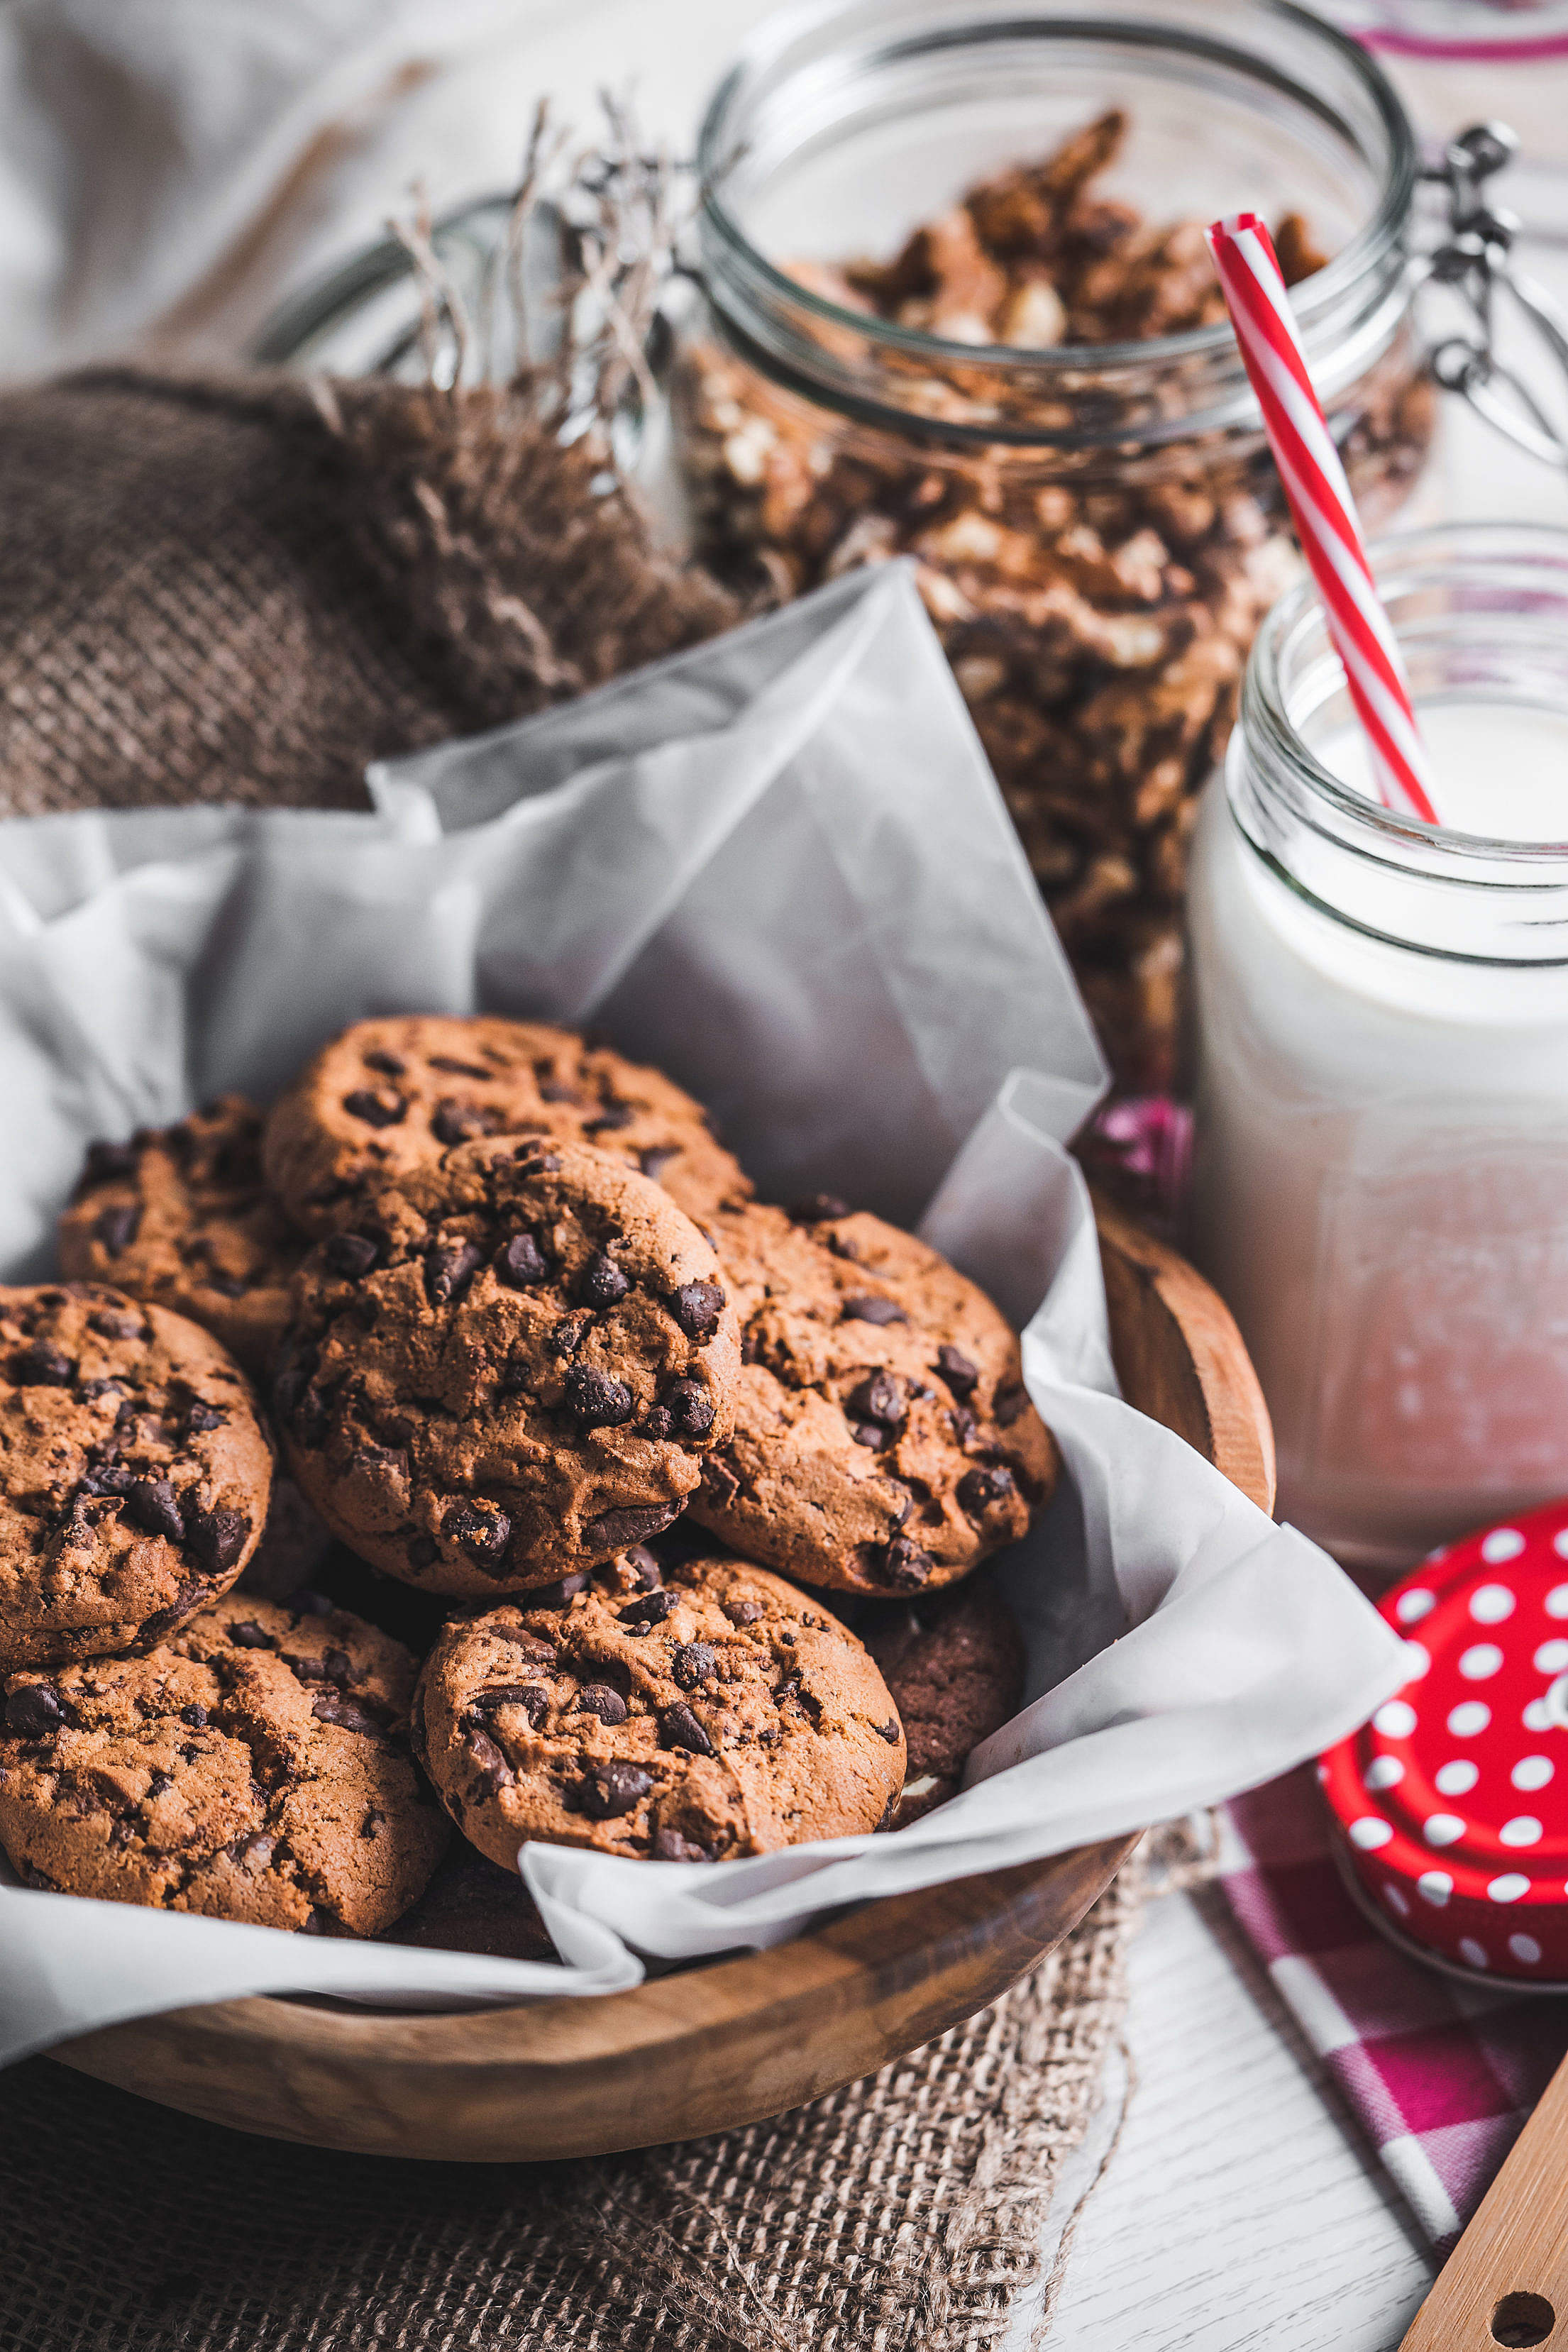 Download Chocolate Cookies with Milk Vertical Free Stock Photo